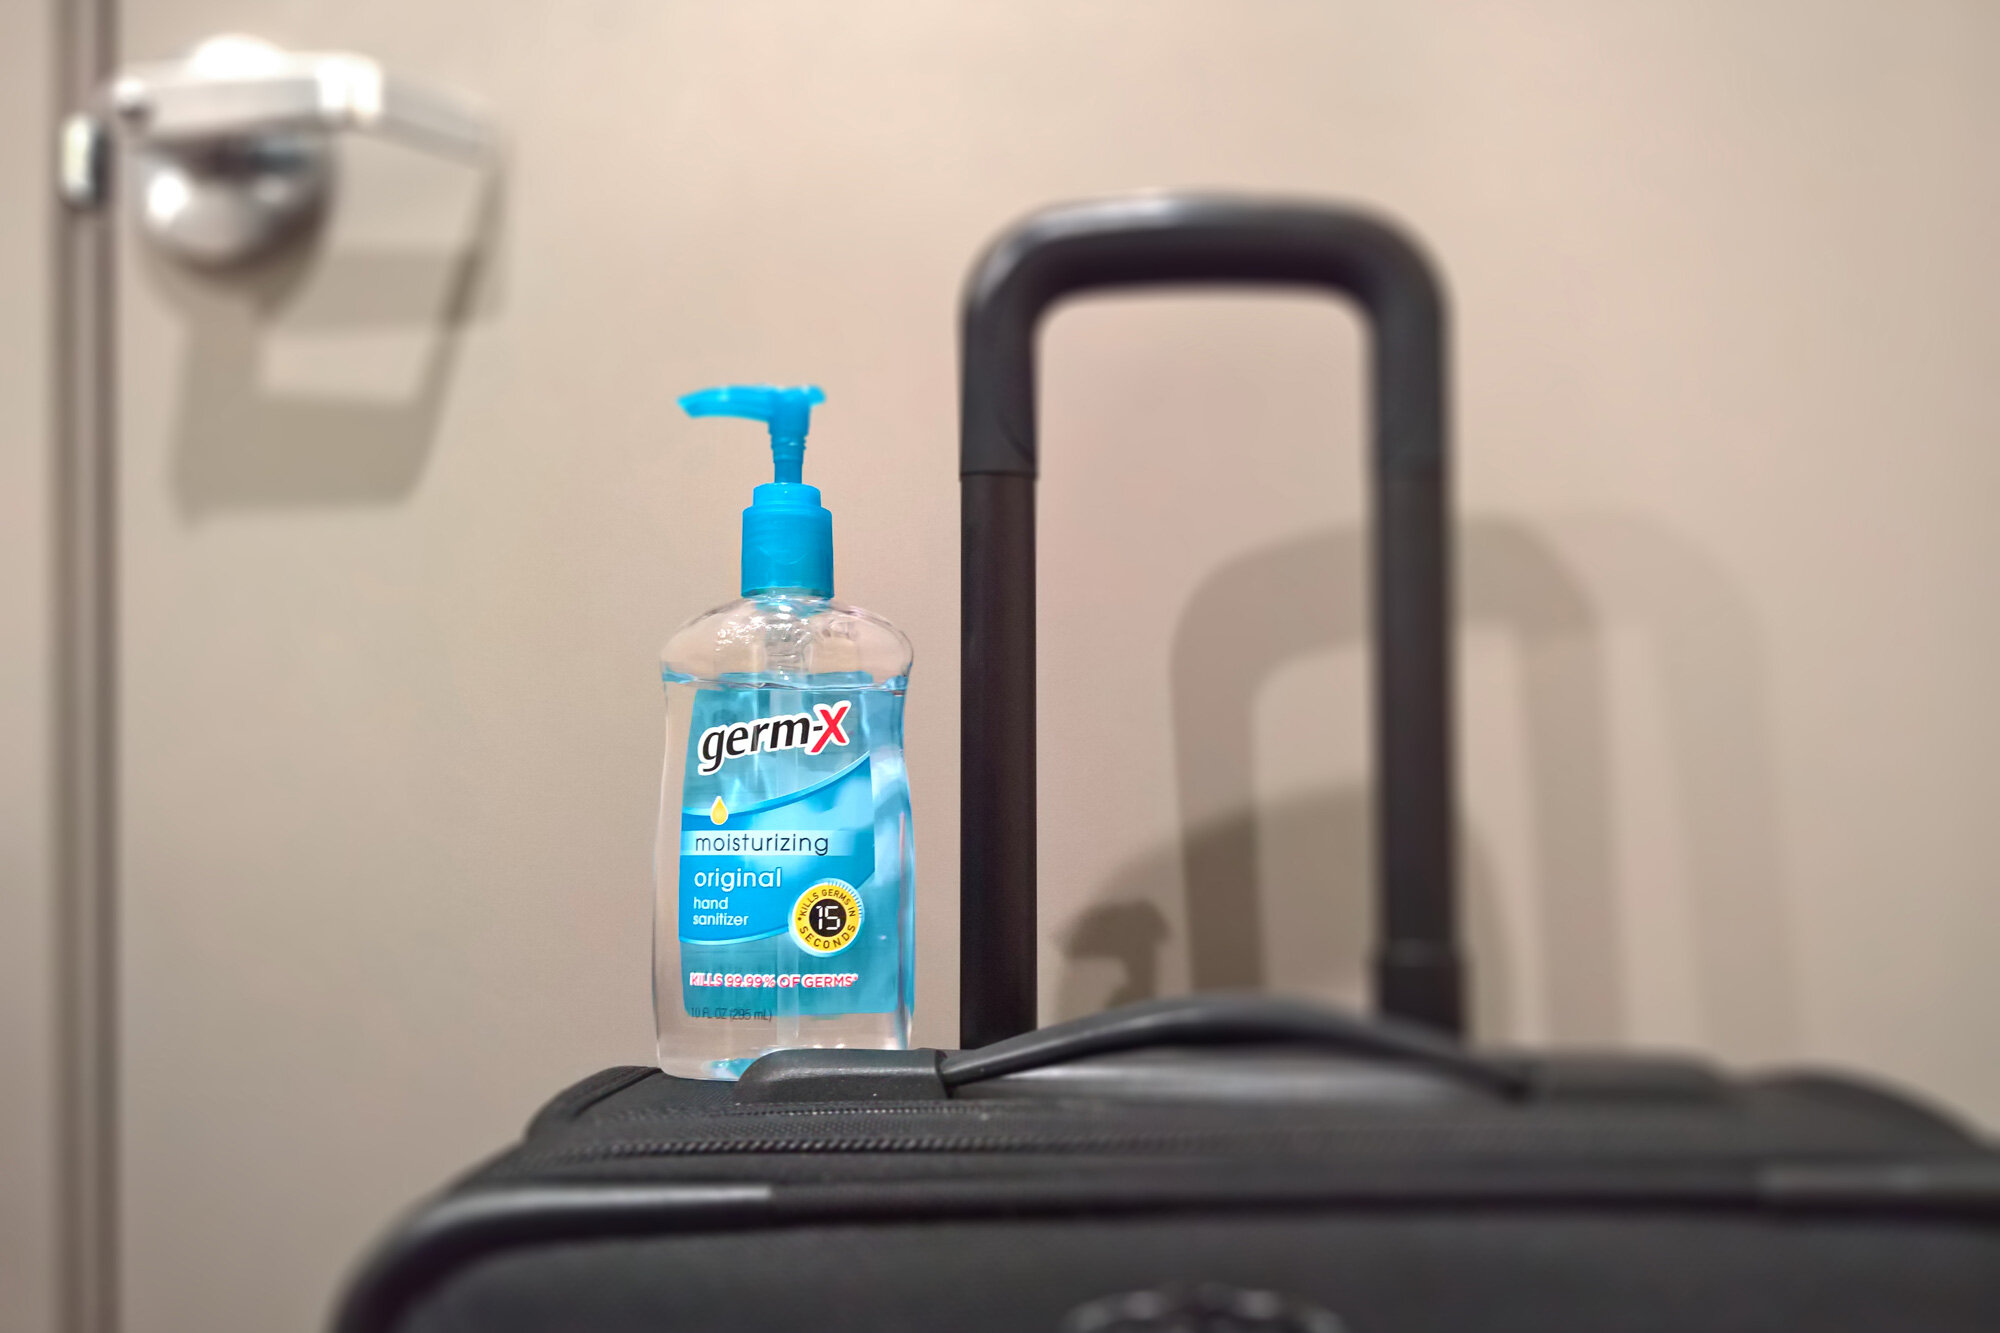 How much hand sanitizer can I bring on a plane during COVID?